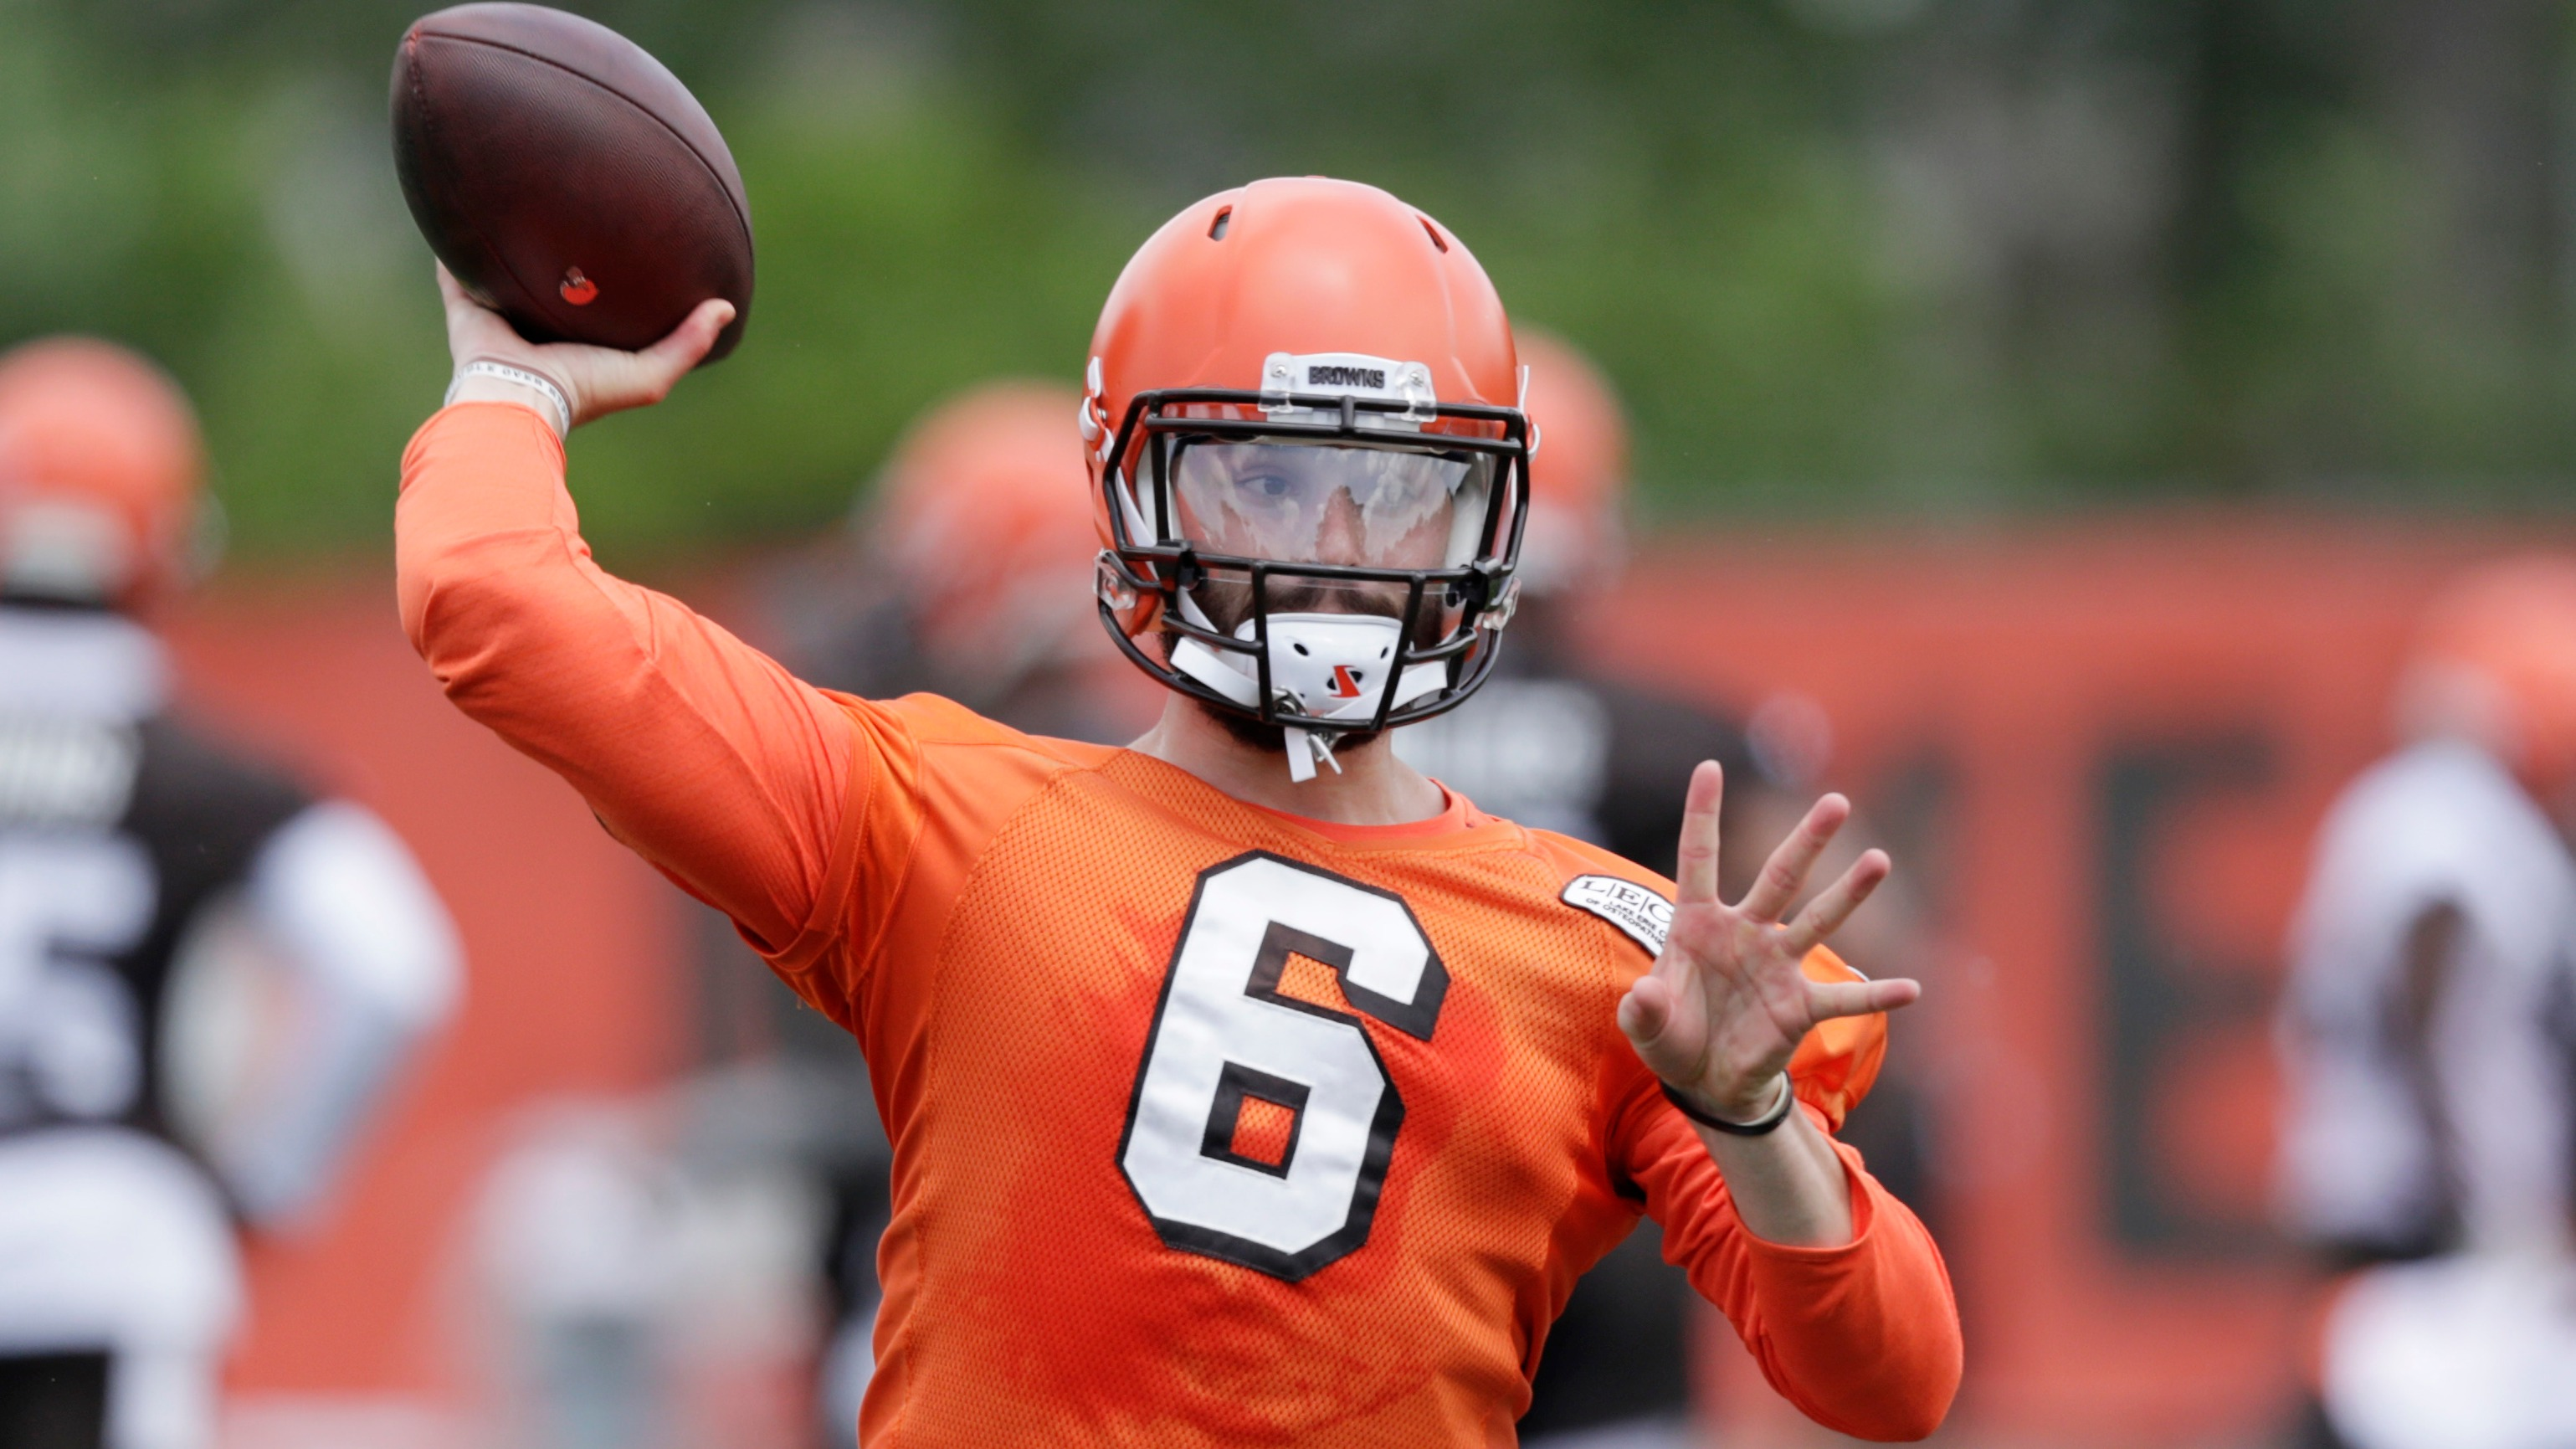 078c91b47 The top two picks in the NFL Draft will face off Thursday in the preseason  when Baker Mayfield and the Browns battle Saquon Barkley and the Giants.